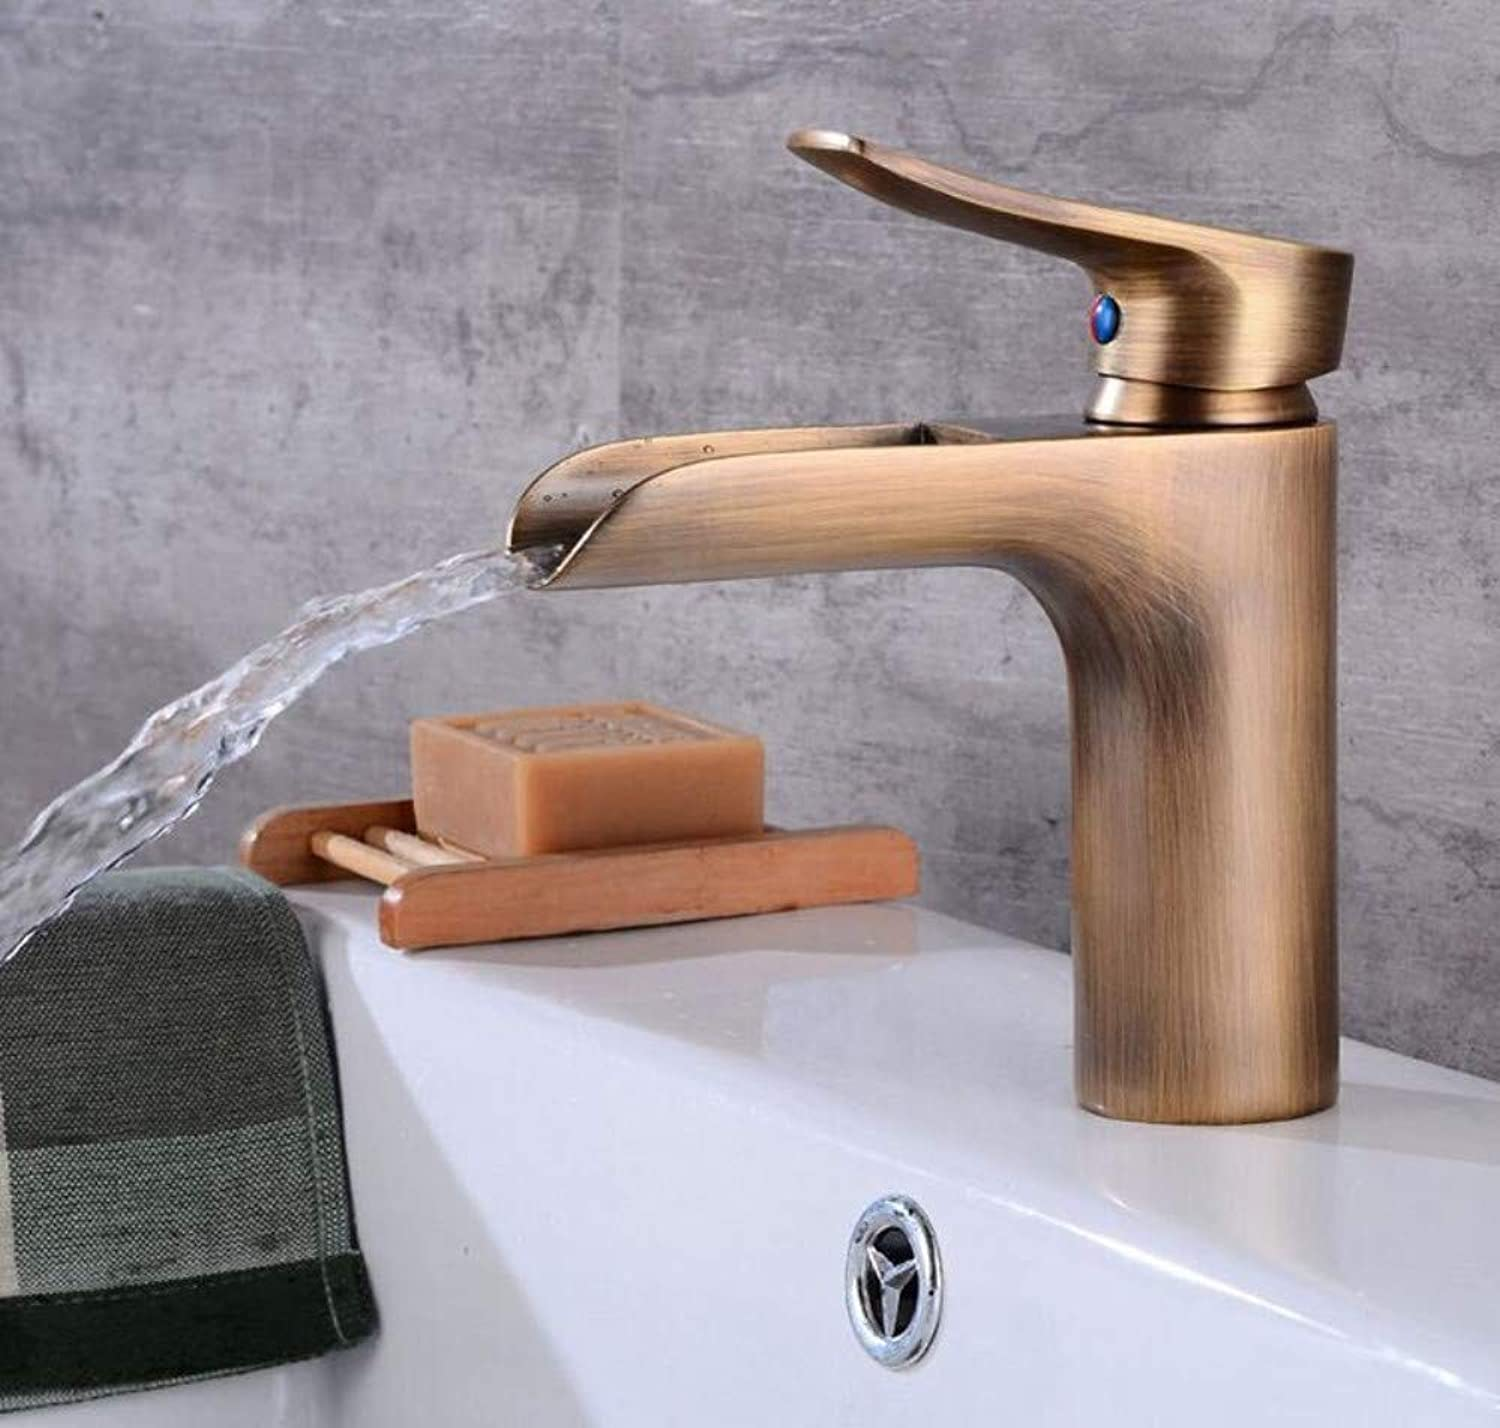 Mixer Basin Taps Basin Sink Mixer Tap Sink Brass Hot and Cold Water Bathroom Faucet Basin Taps